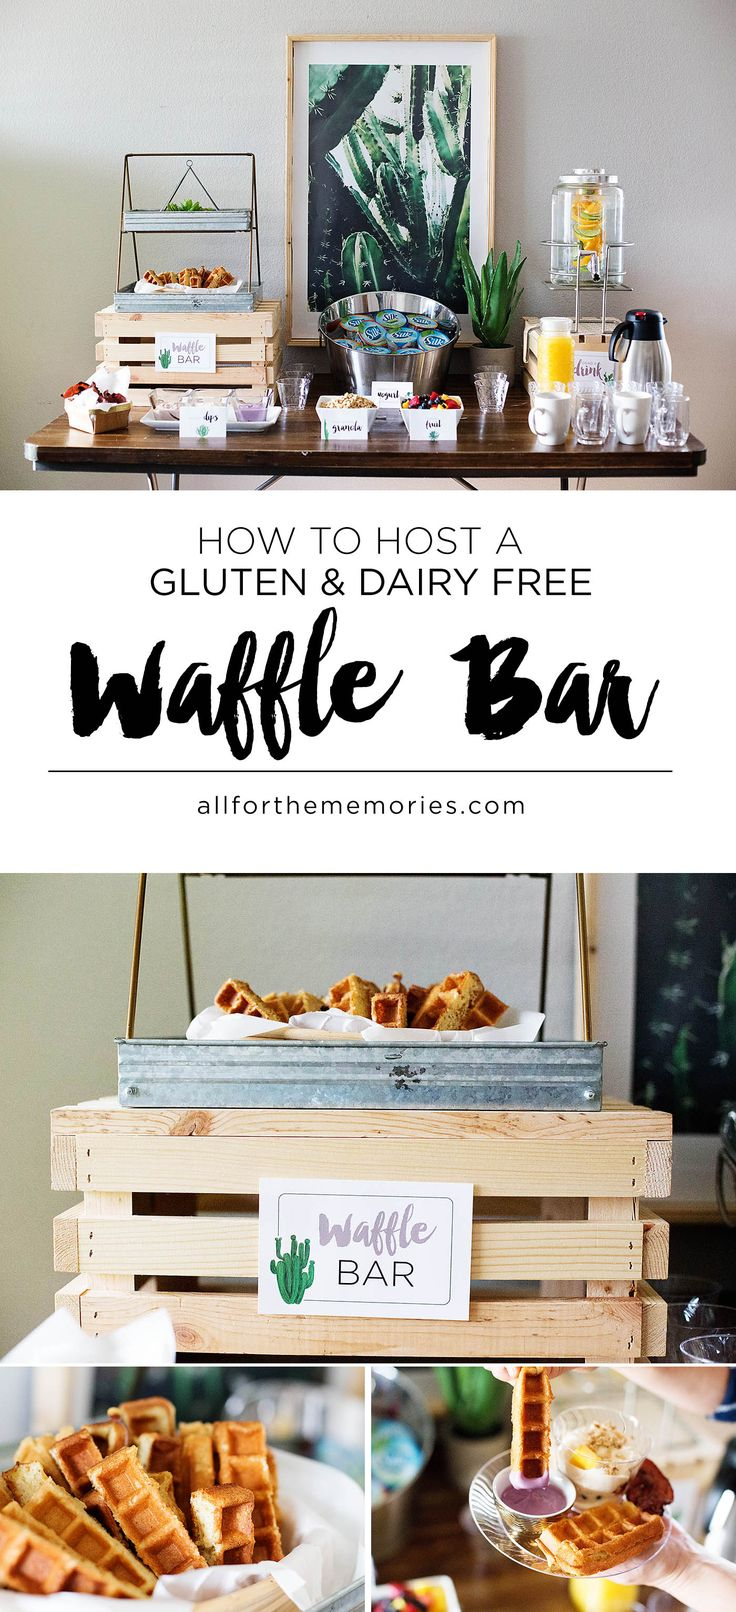 How to host a gluten and dairy free waffle bar AD #dairyfreegoodness @walmart